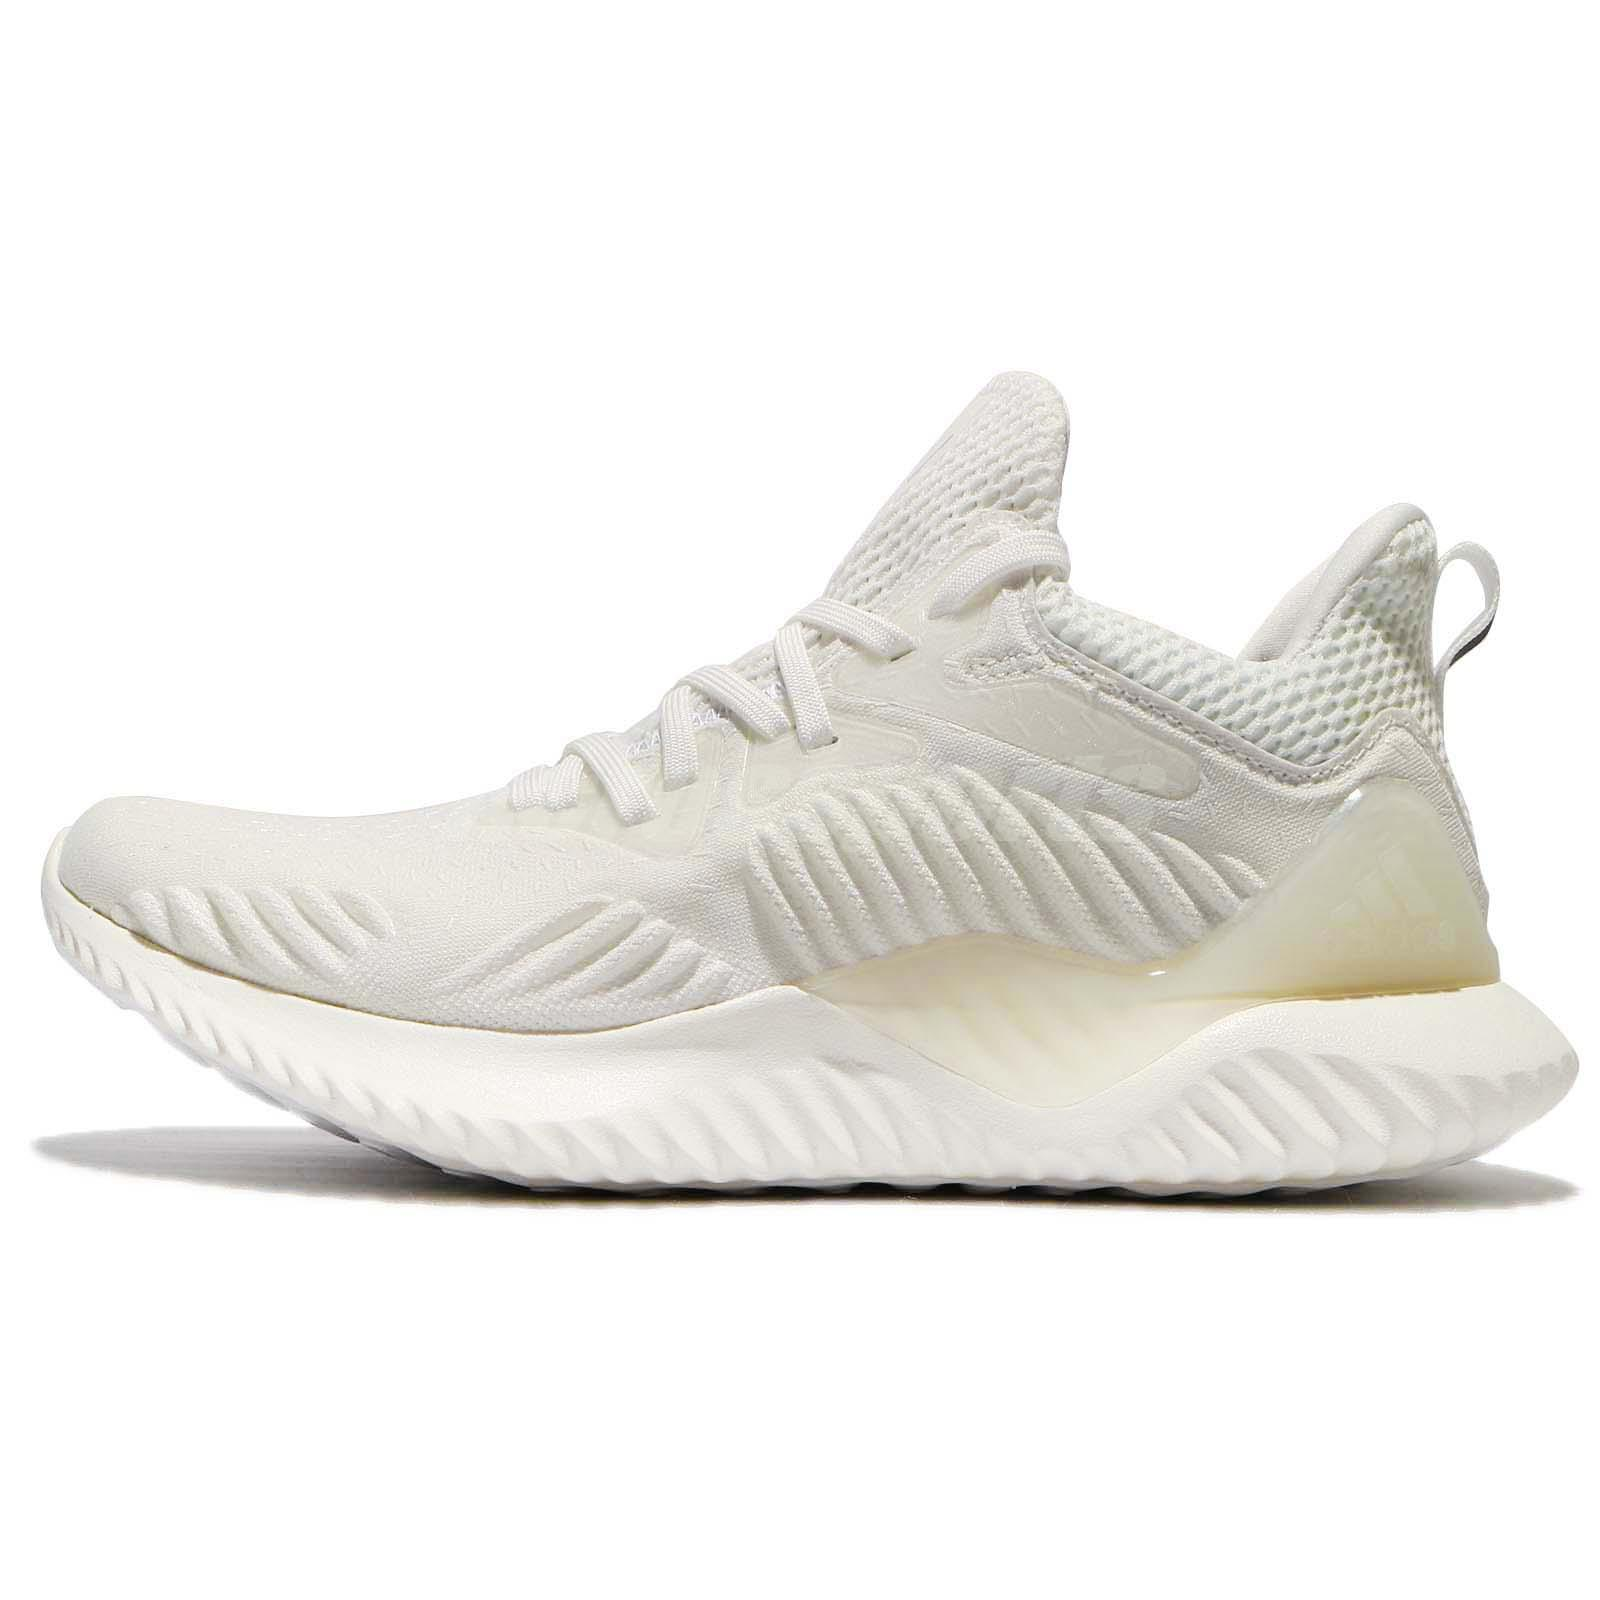 adidas Alphabounce Beyond W Non Dyed White Women Running Shoes Sneakers  DB1119